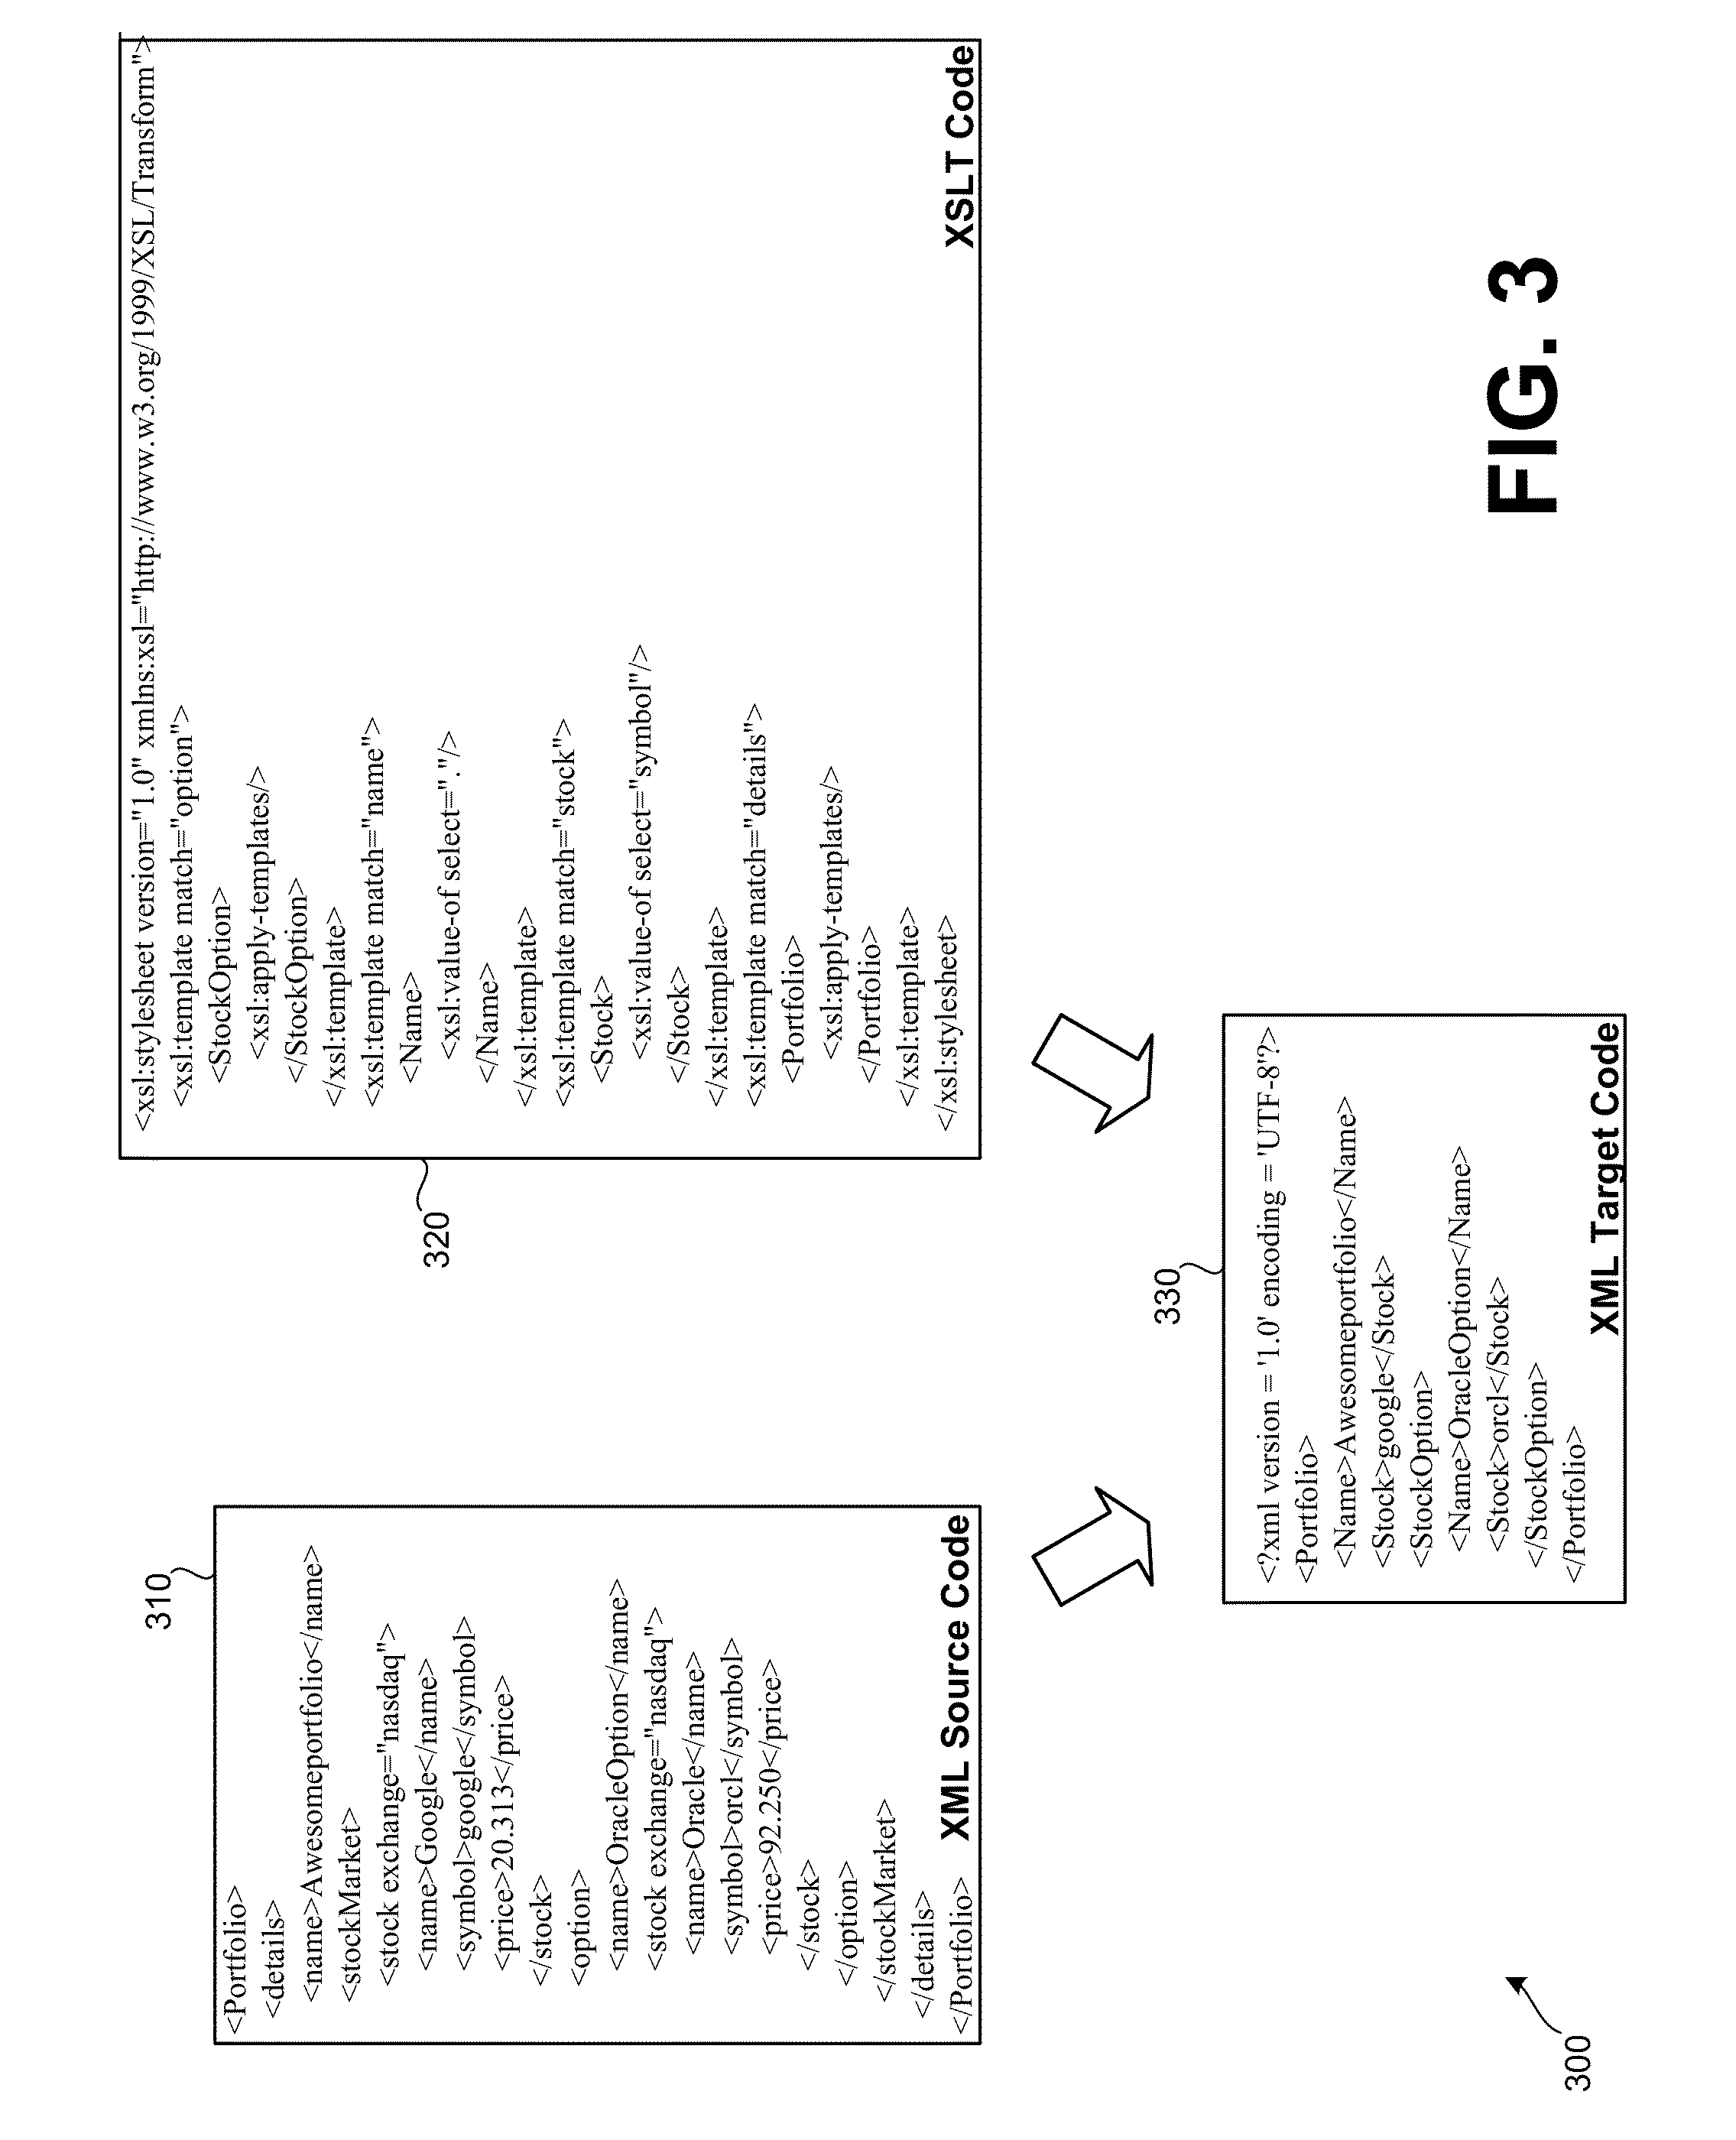 Cool xslt apply templates contemporary entry level resume patent us20130097487 single view representation of an xls biocorpaavc Gallery